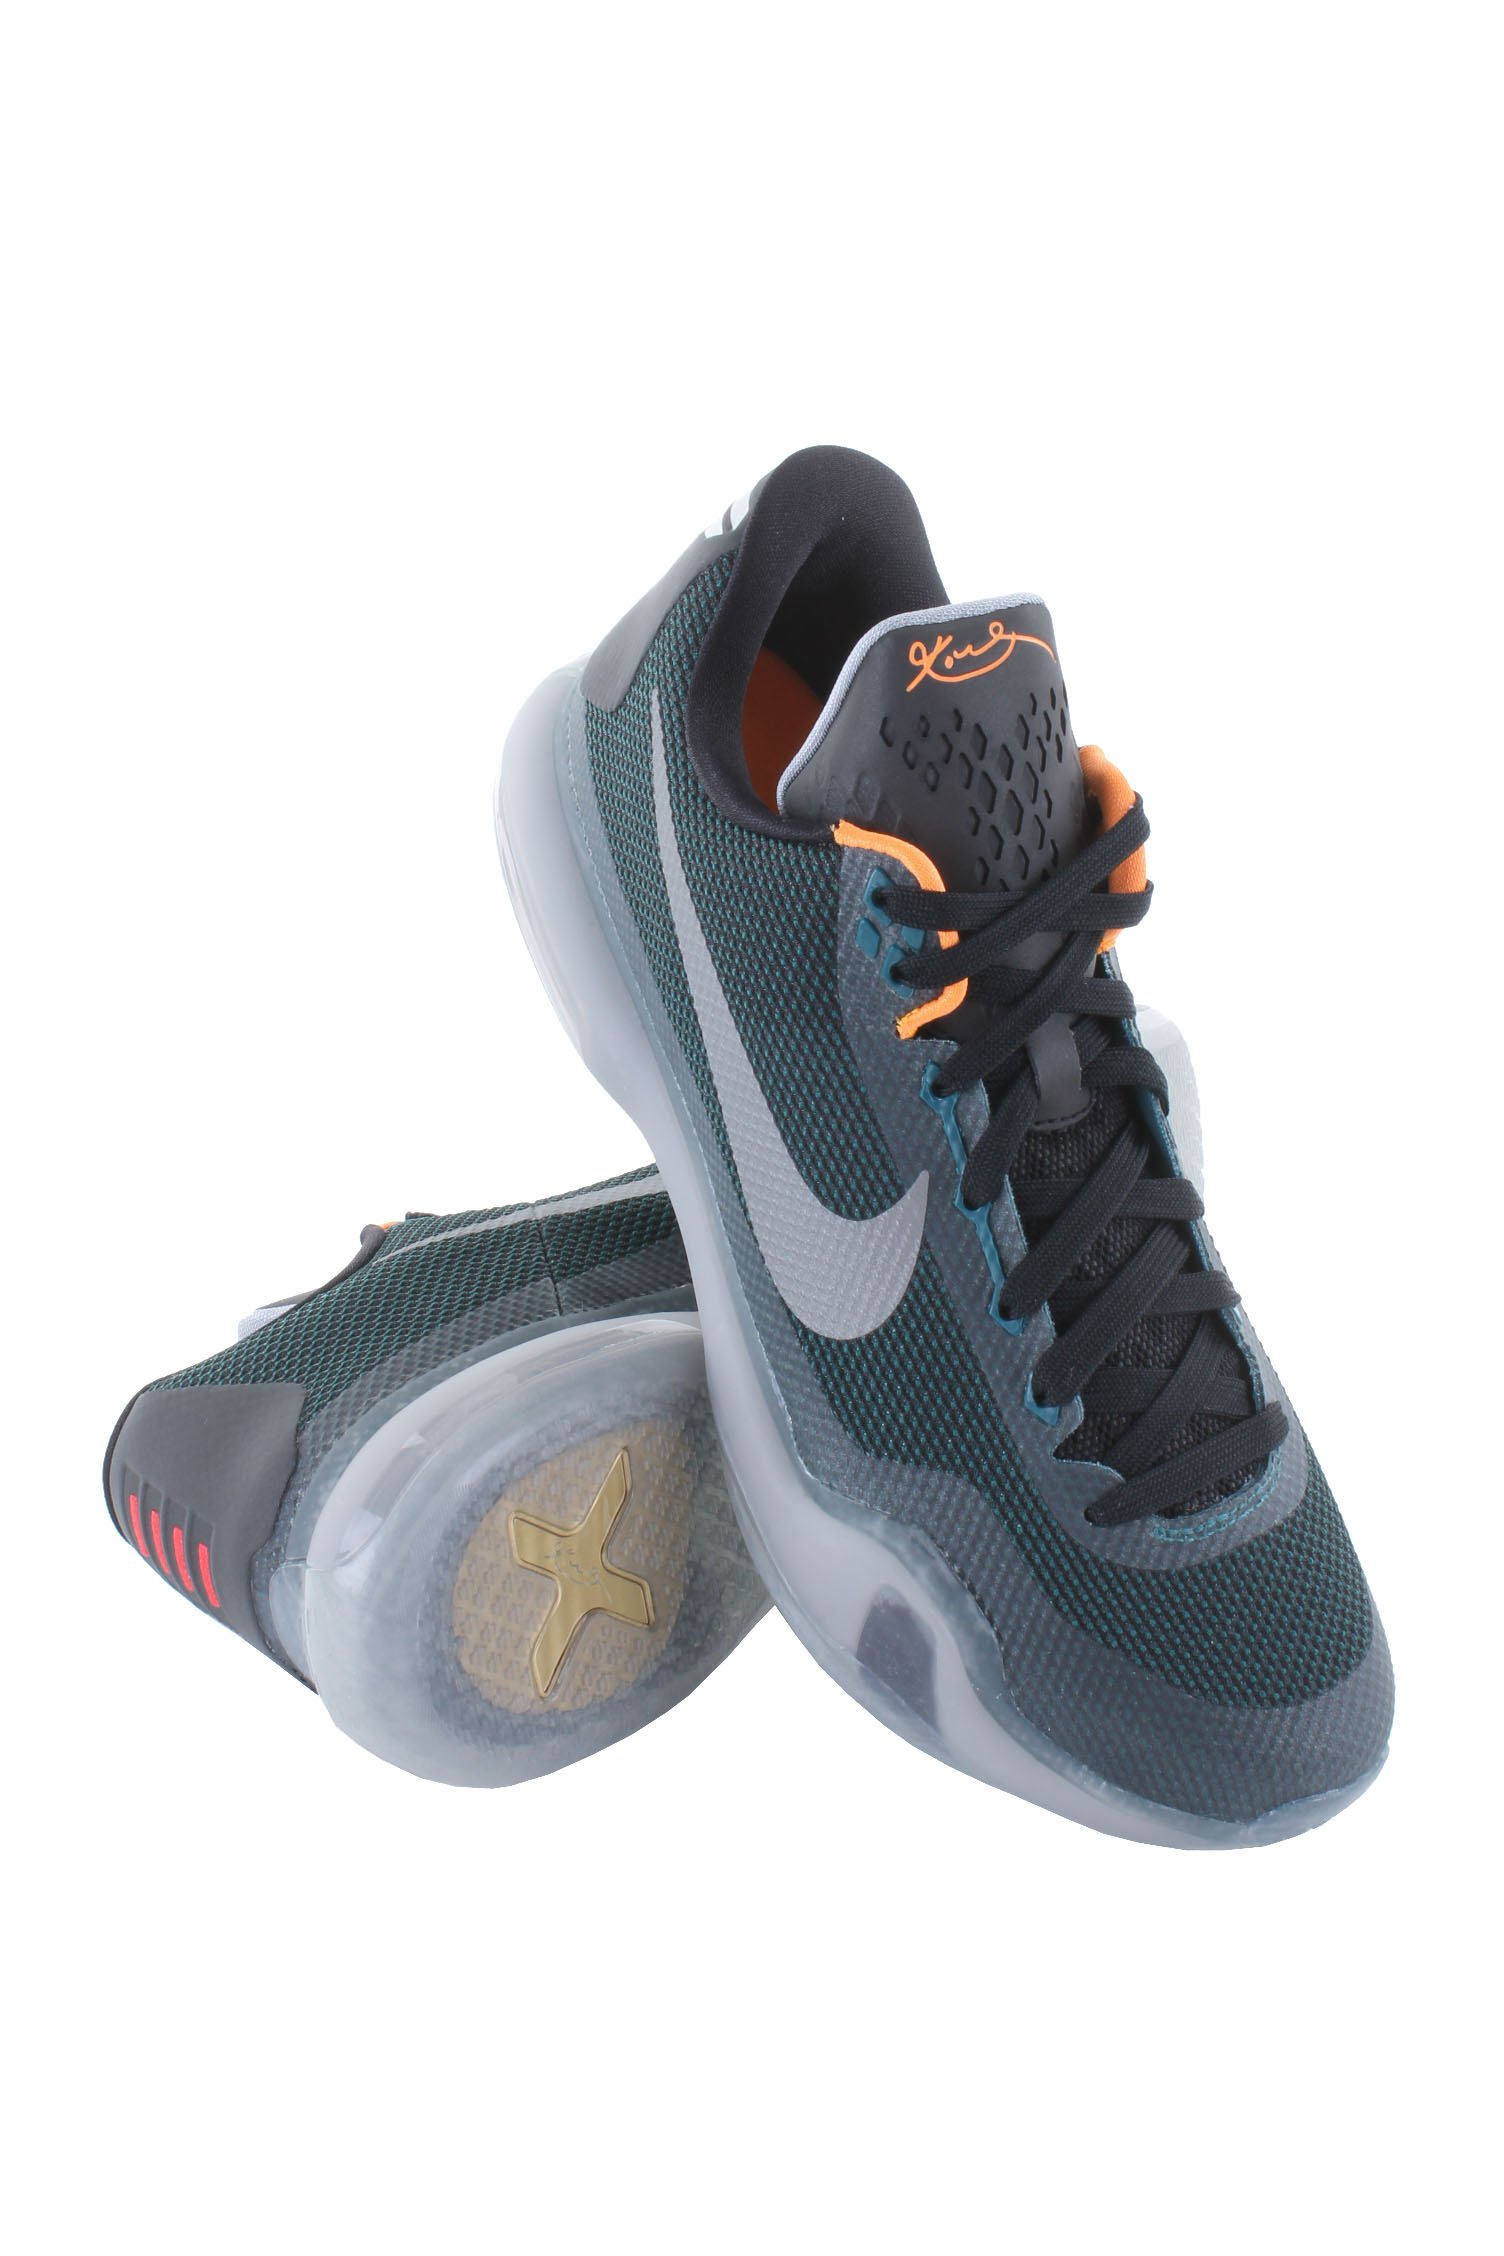 save off c2a1a 44696 Galleon - NIKE Kobe X Men s Basketball Shoes, Teal Reflect Silver-Black-Wolf  Grey, 14 M US